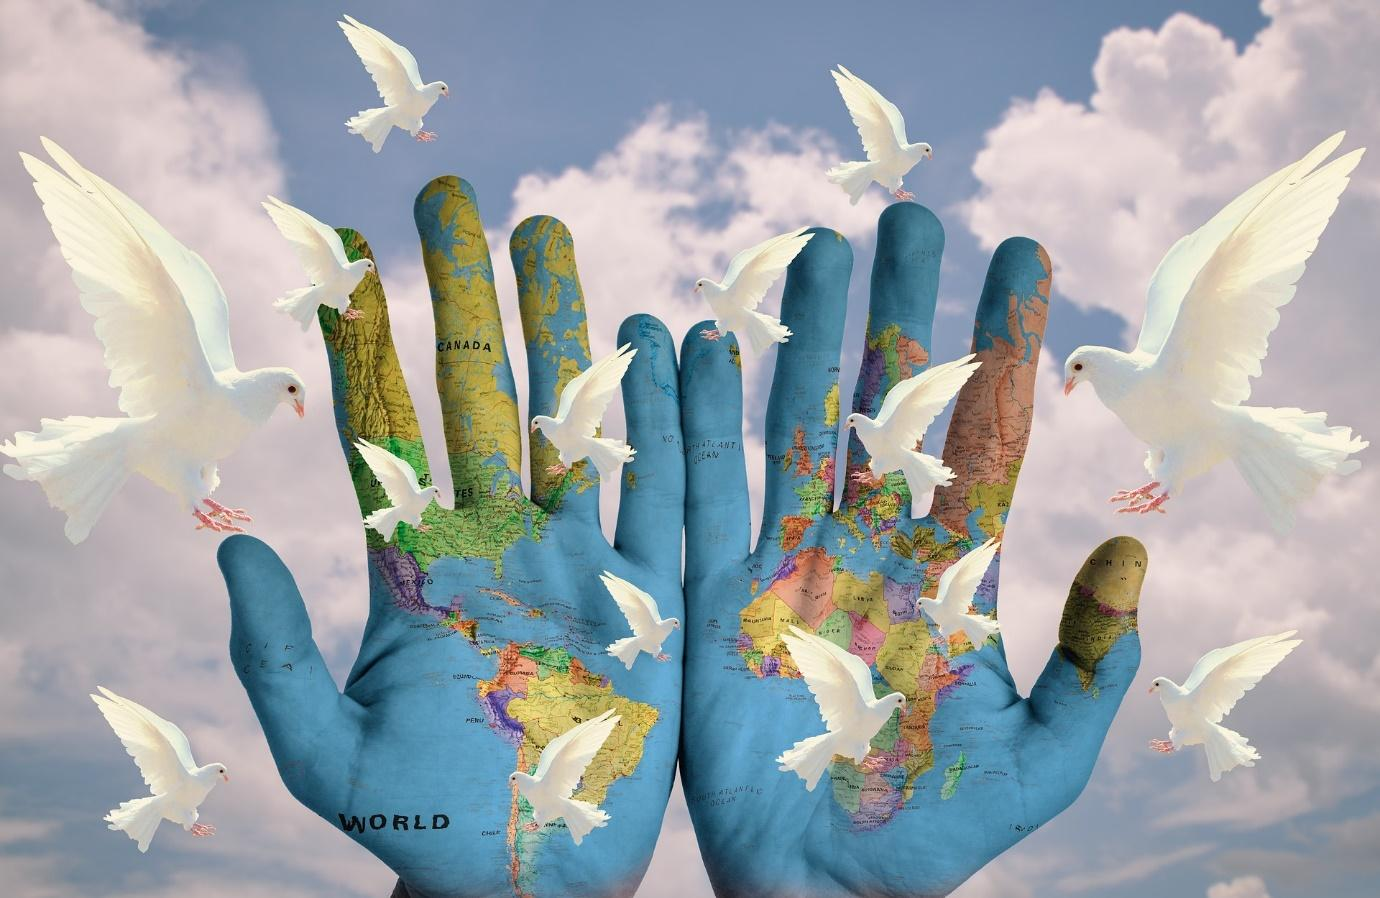 Crystal children want to protect and preserve the earth as much as possible.